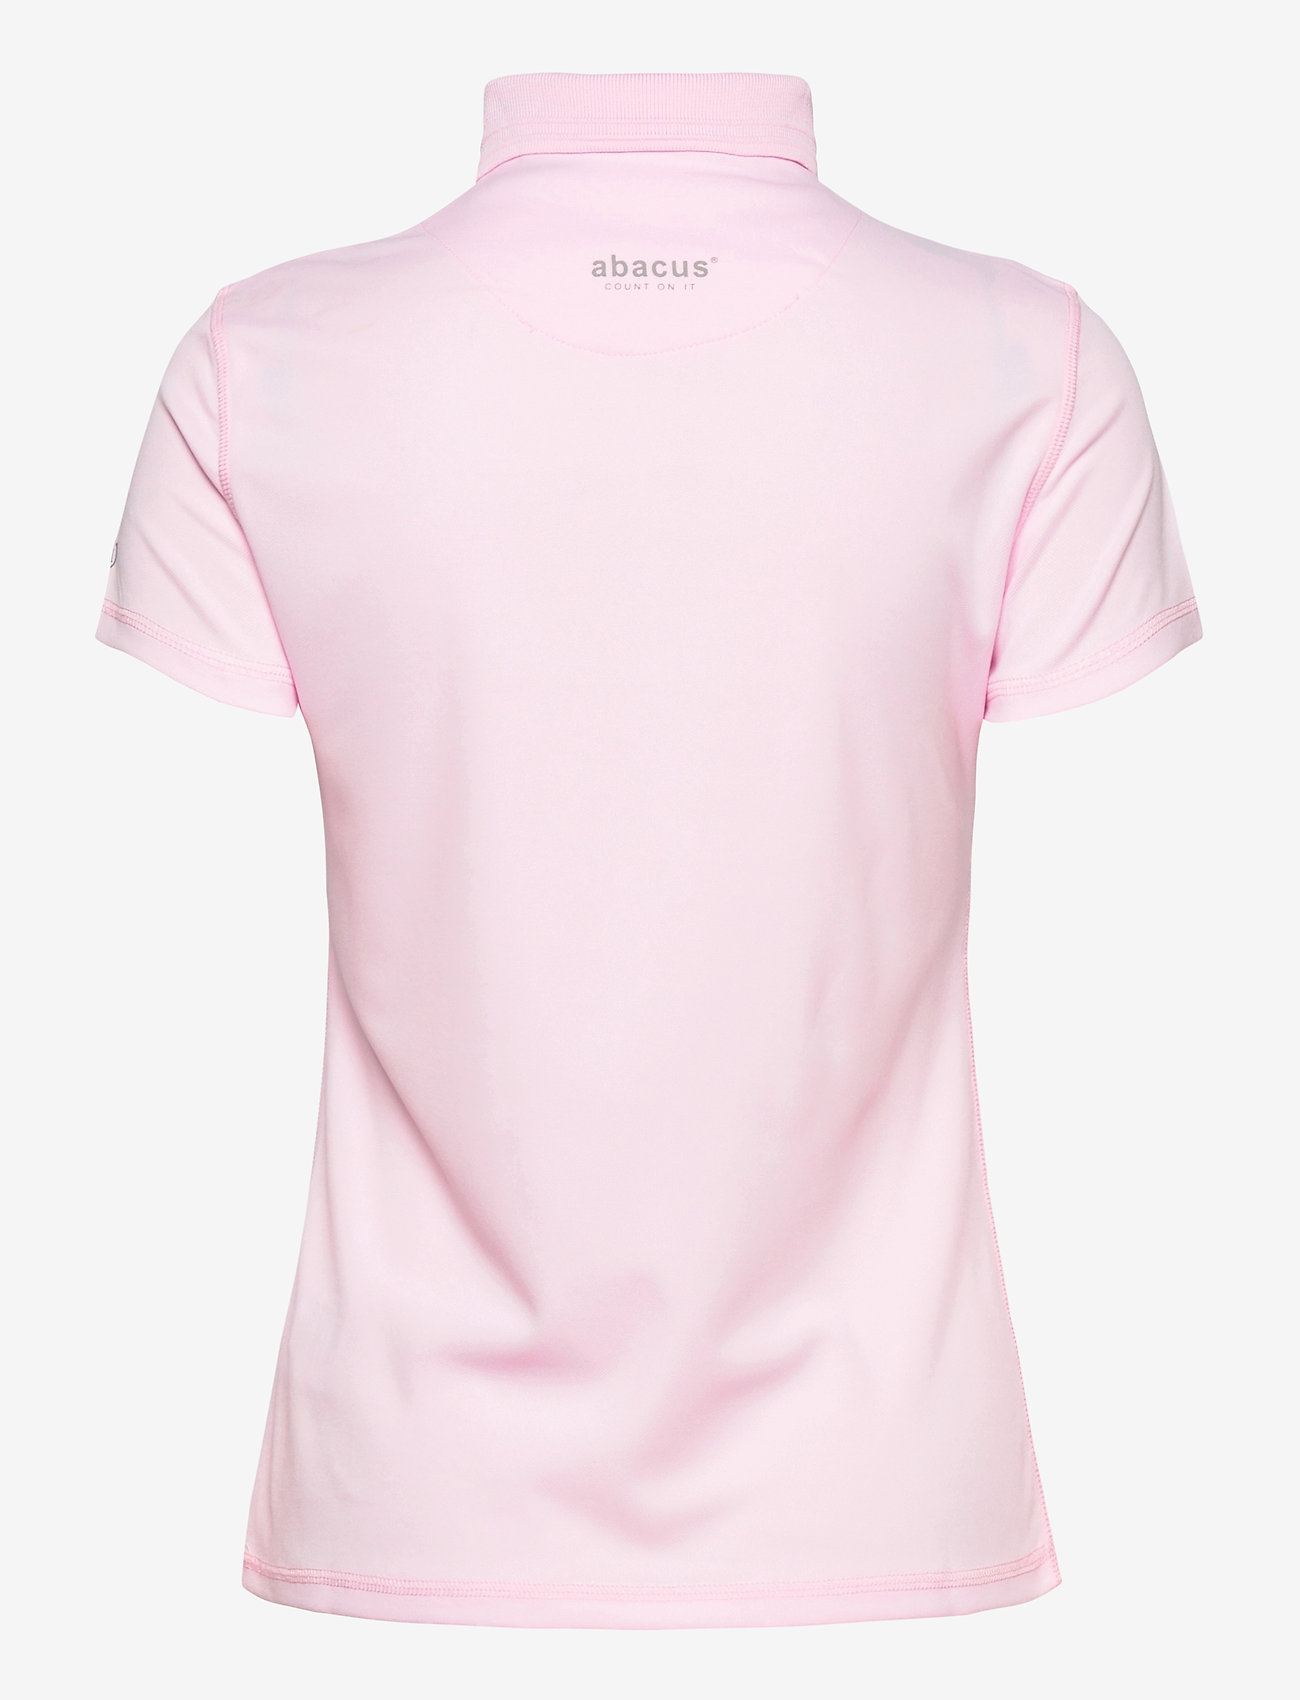 Abacus - Lds Clark polo - polo's - lt.pink - 1